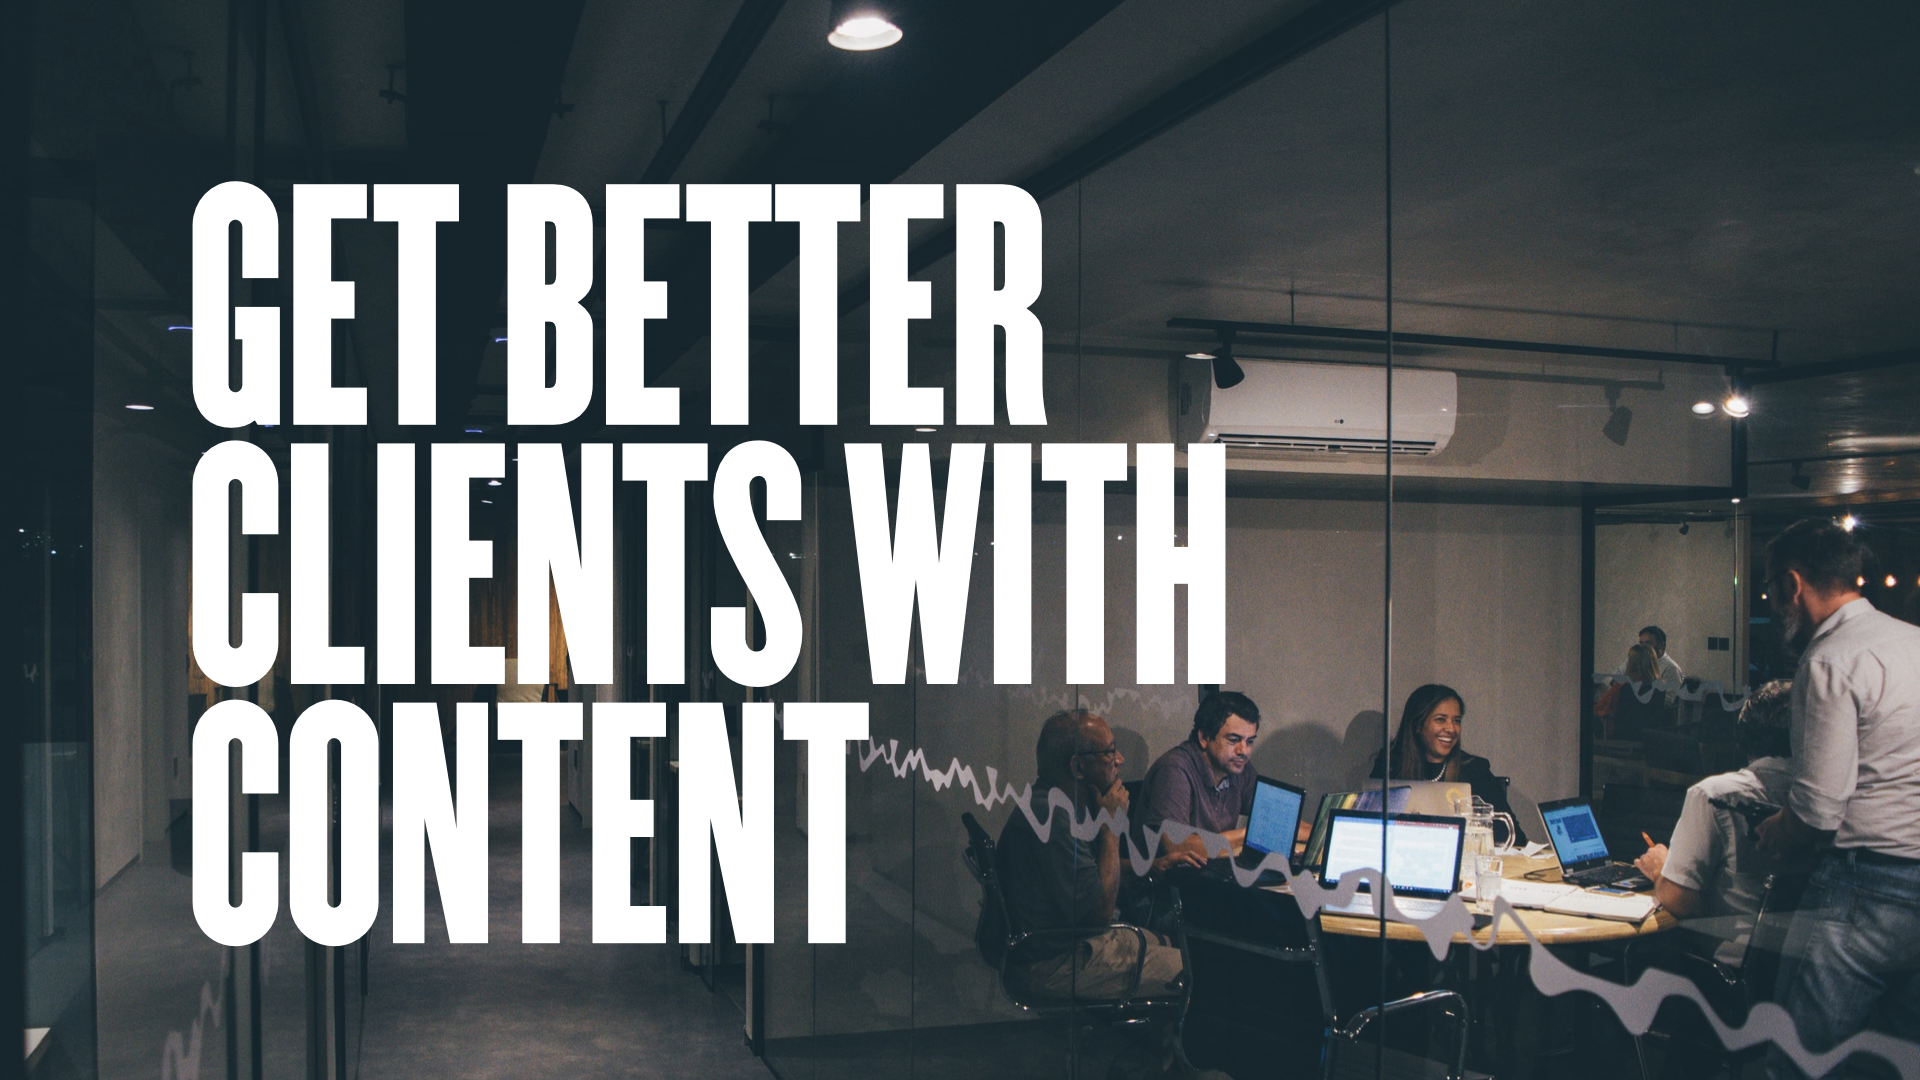 Get better clients with Instagram content marketing